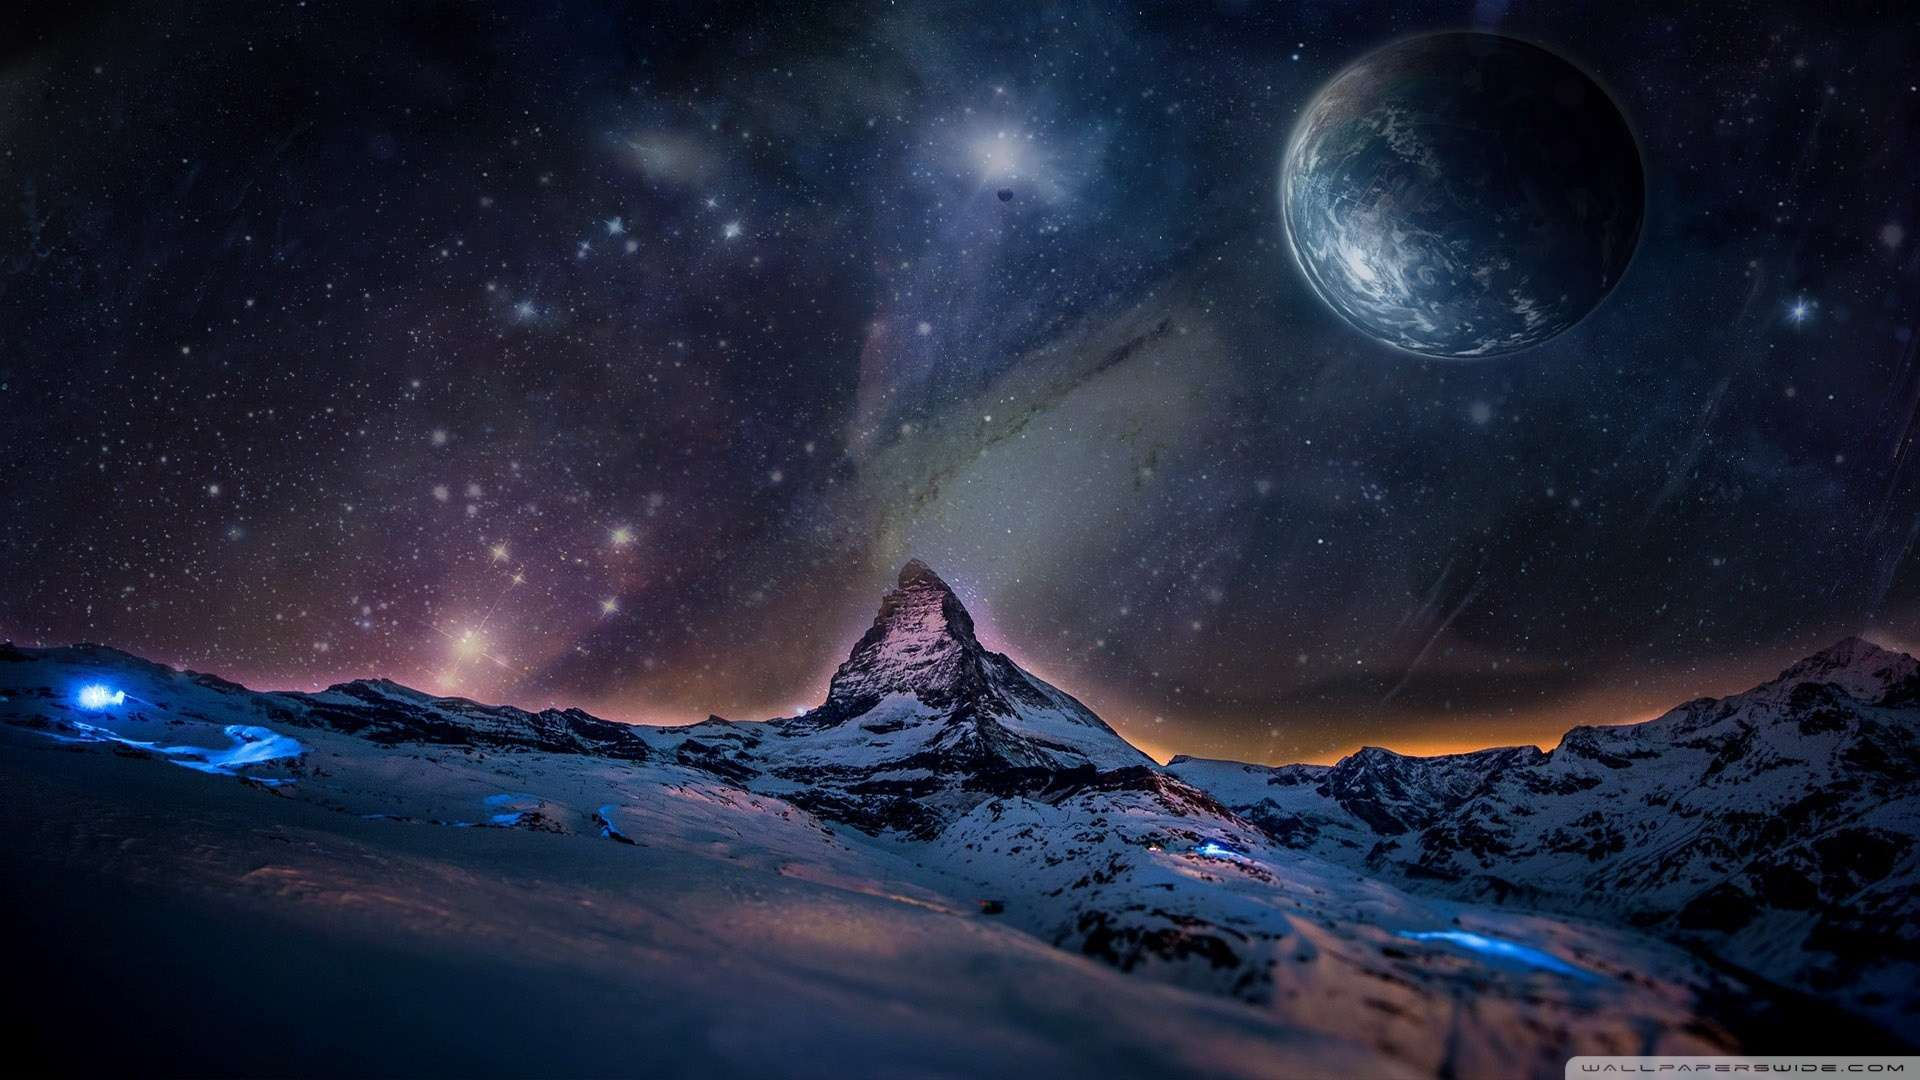 space 1080p wallpaper landscape - photo #3